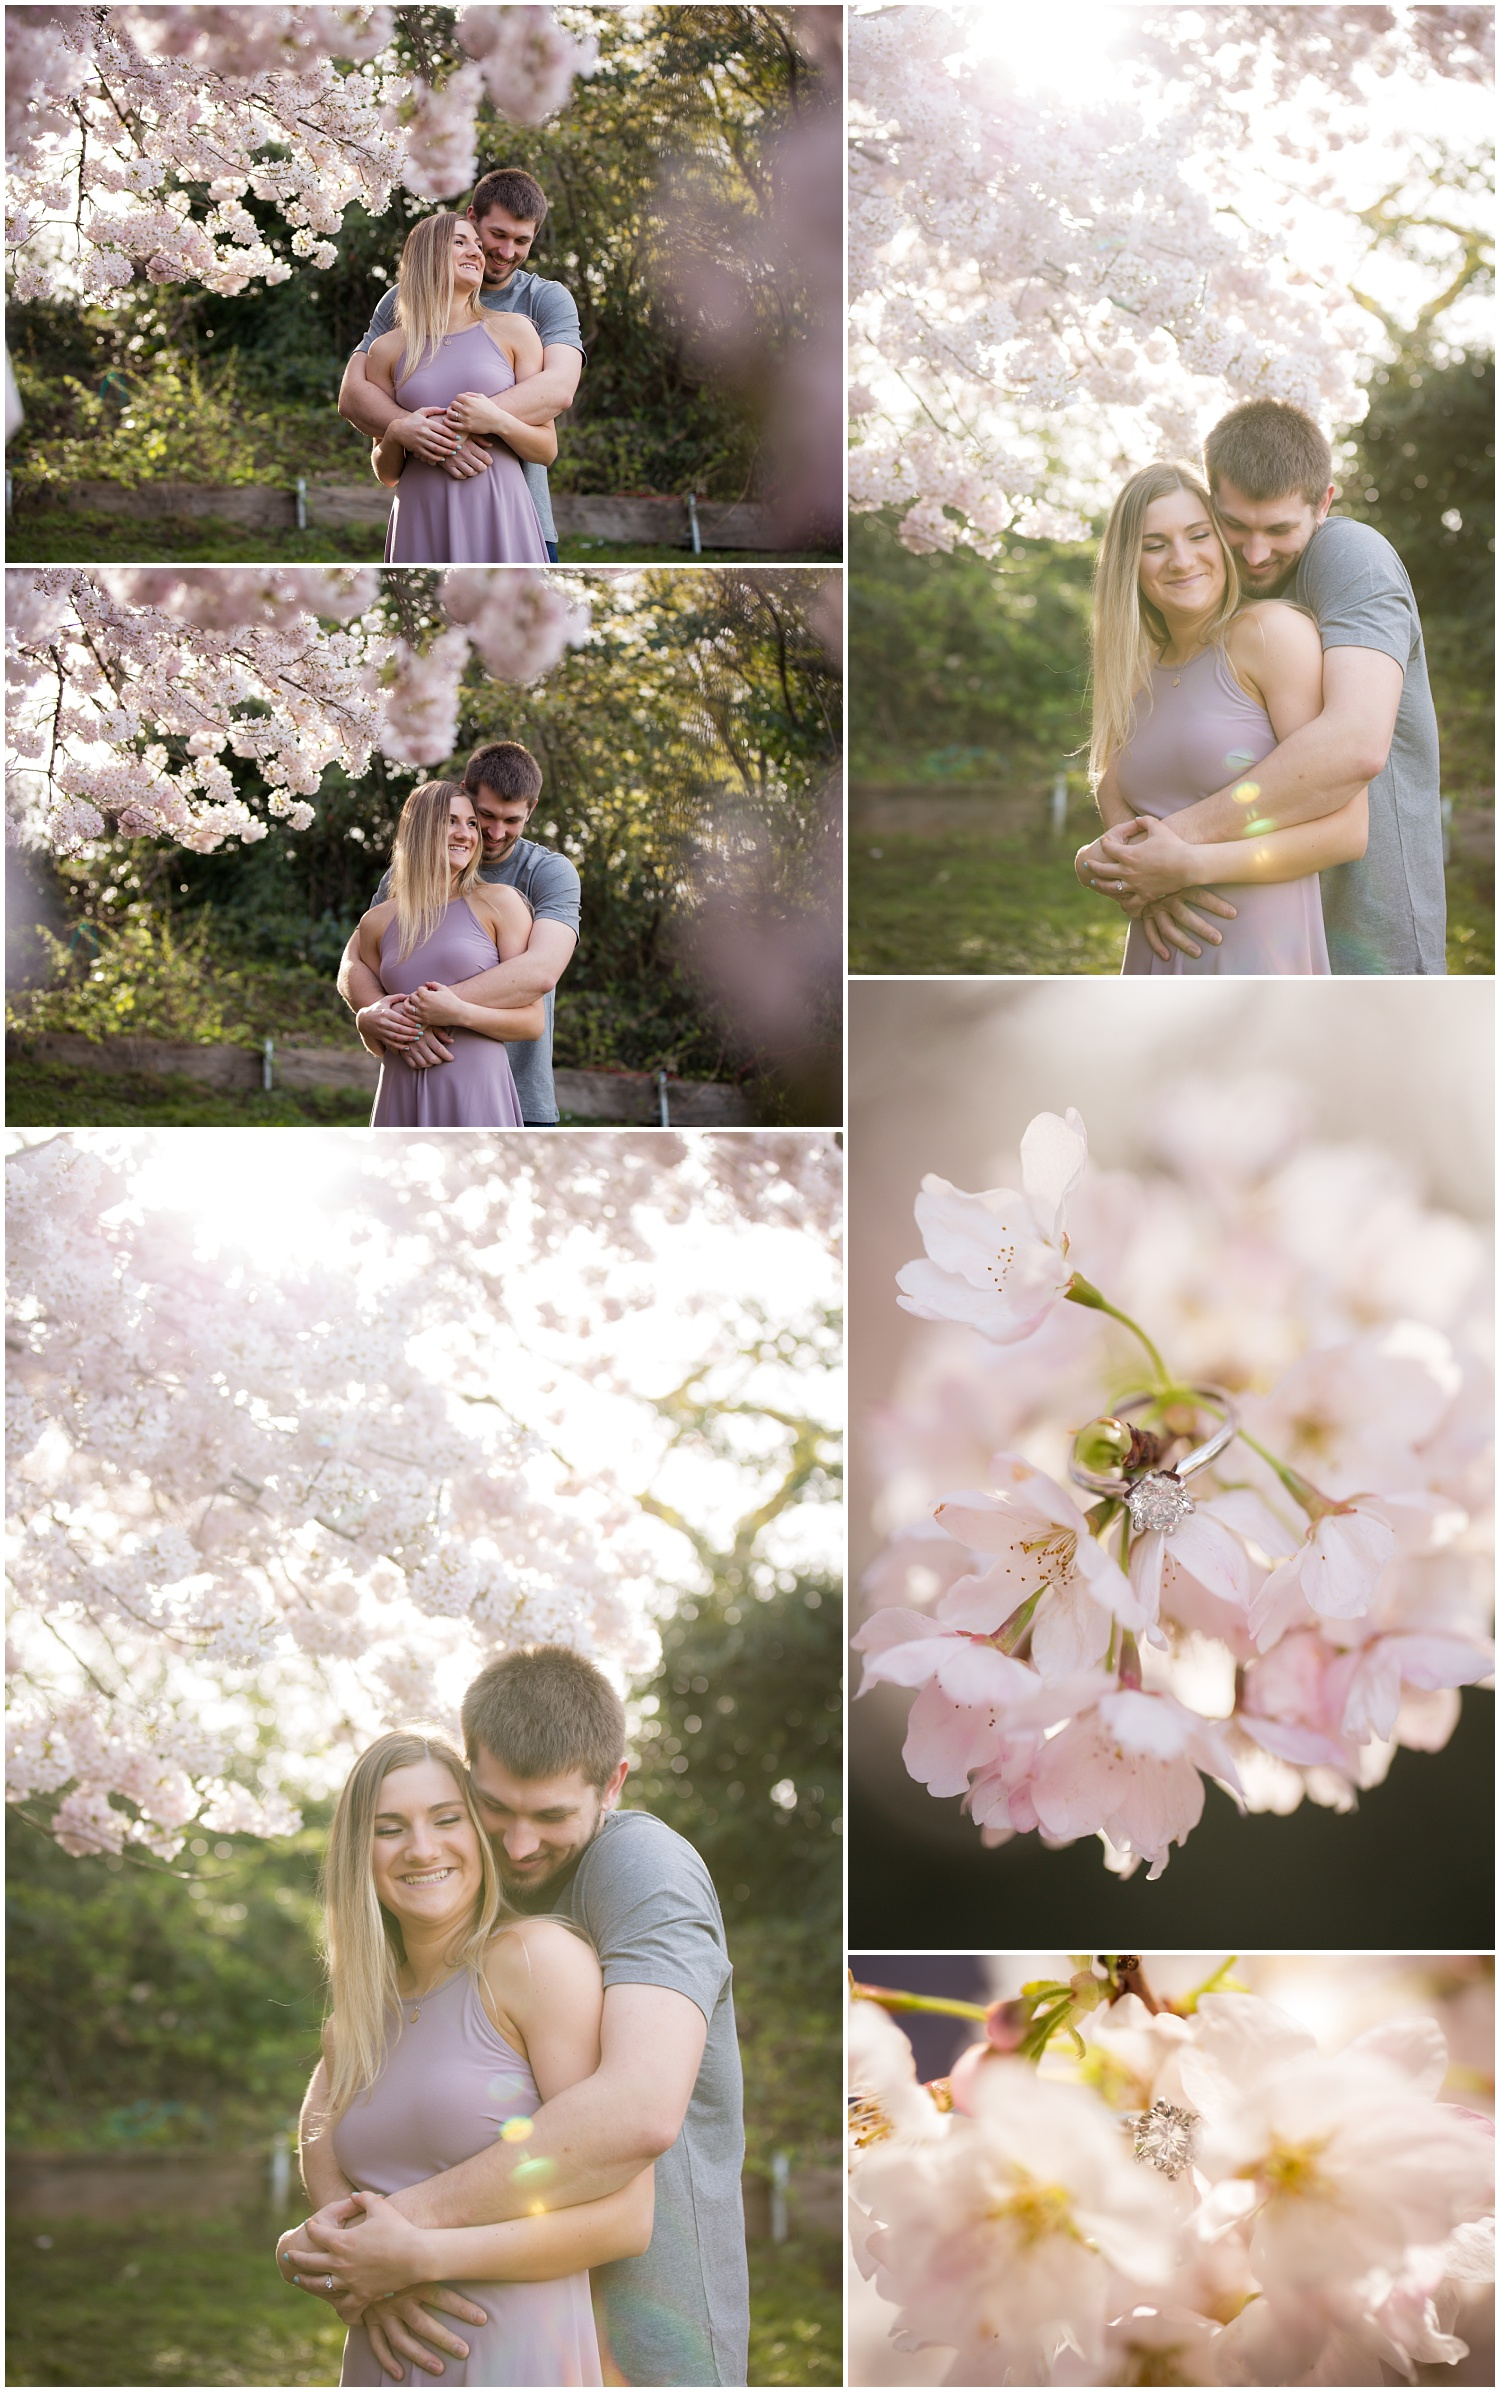 Amazing Day Photography - Cherry Blossom Engagement Session - Queen Elizabeth Park Engagement Session - Vancouver Engagement Photographer  (2).jpg